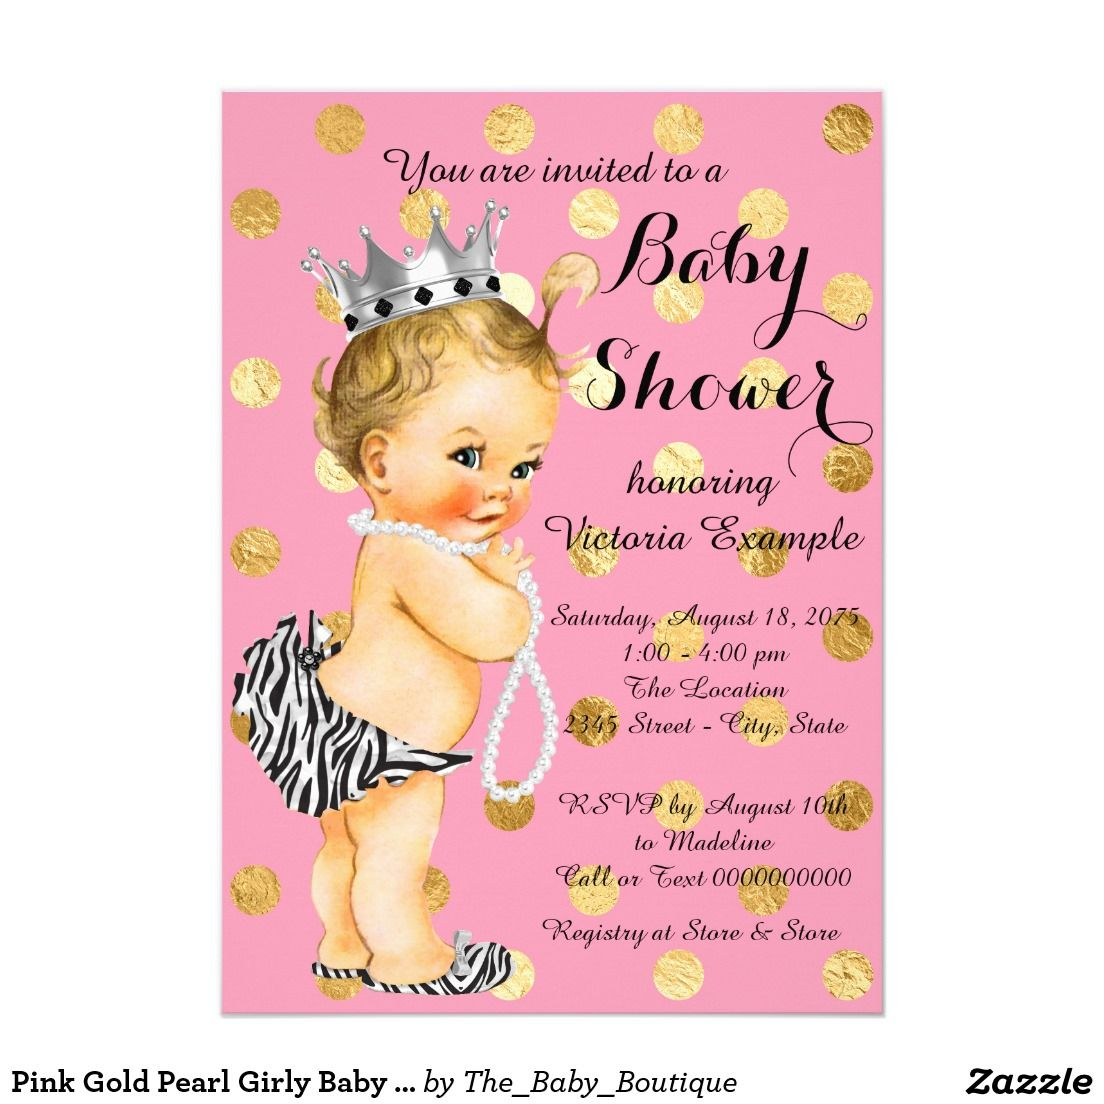 Pink Gold Pearl Girly Baby Shower Card | Gold pearl, Girly and Pearls